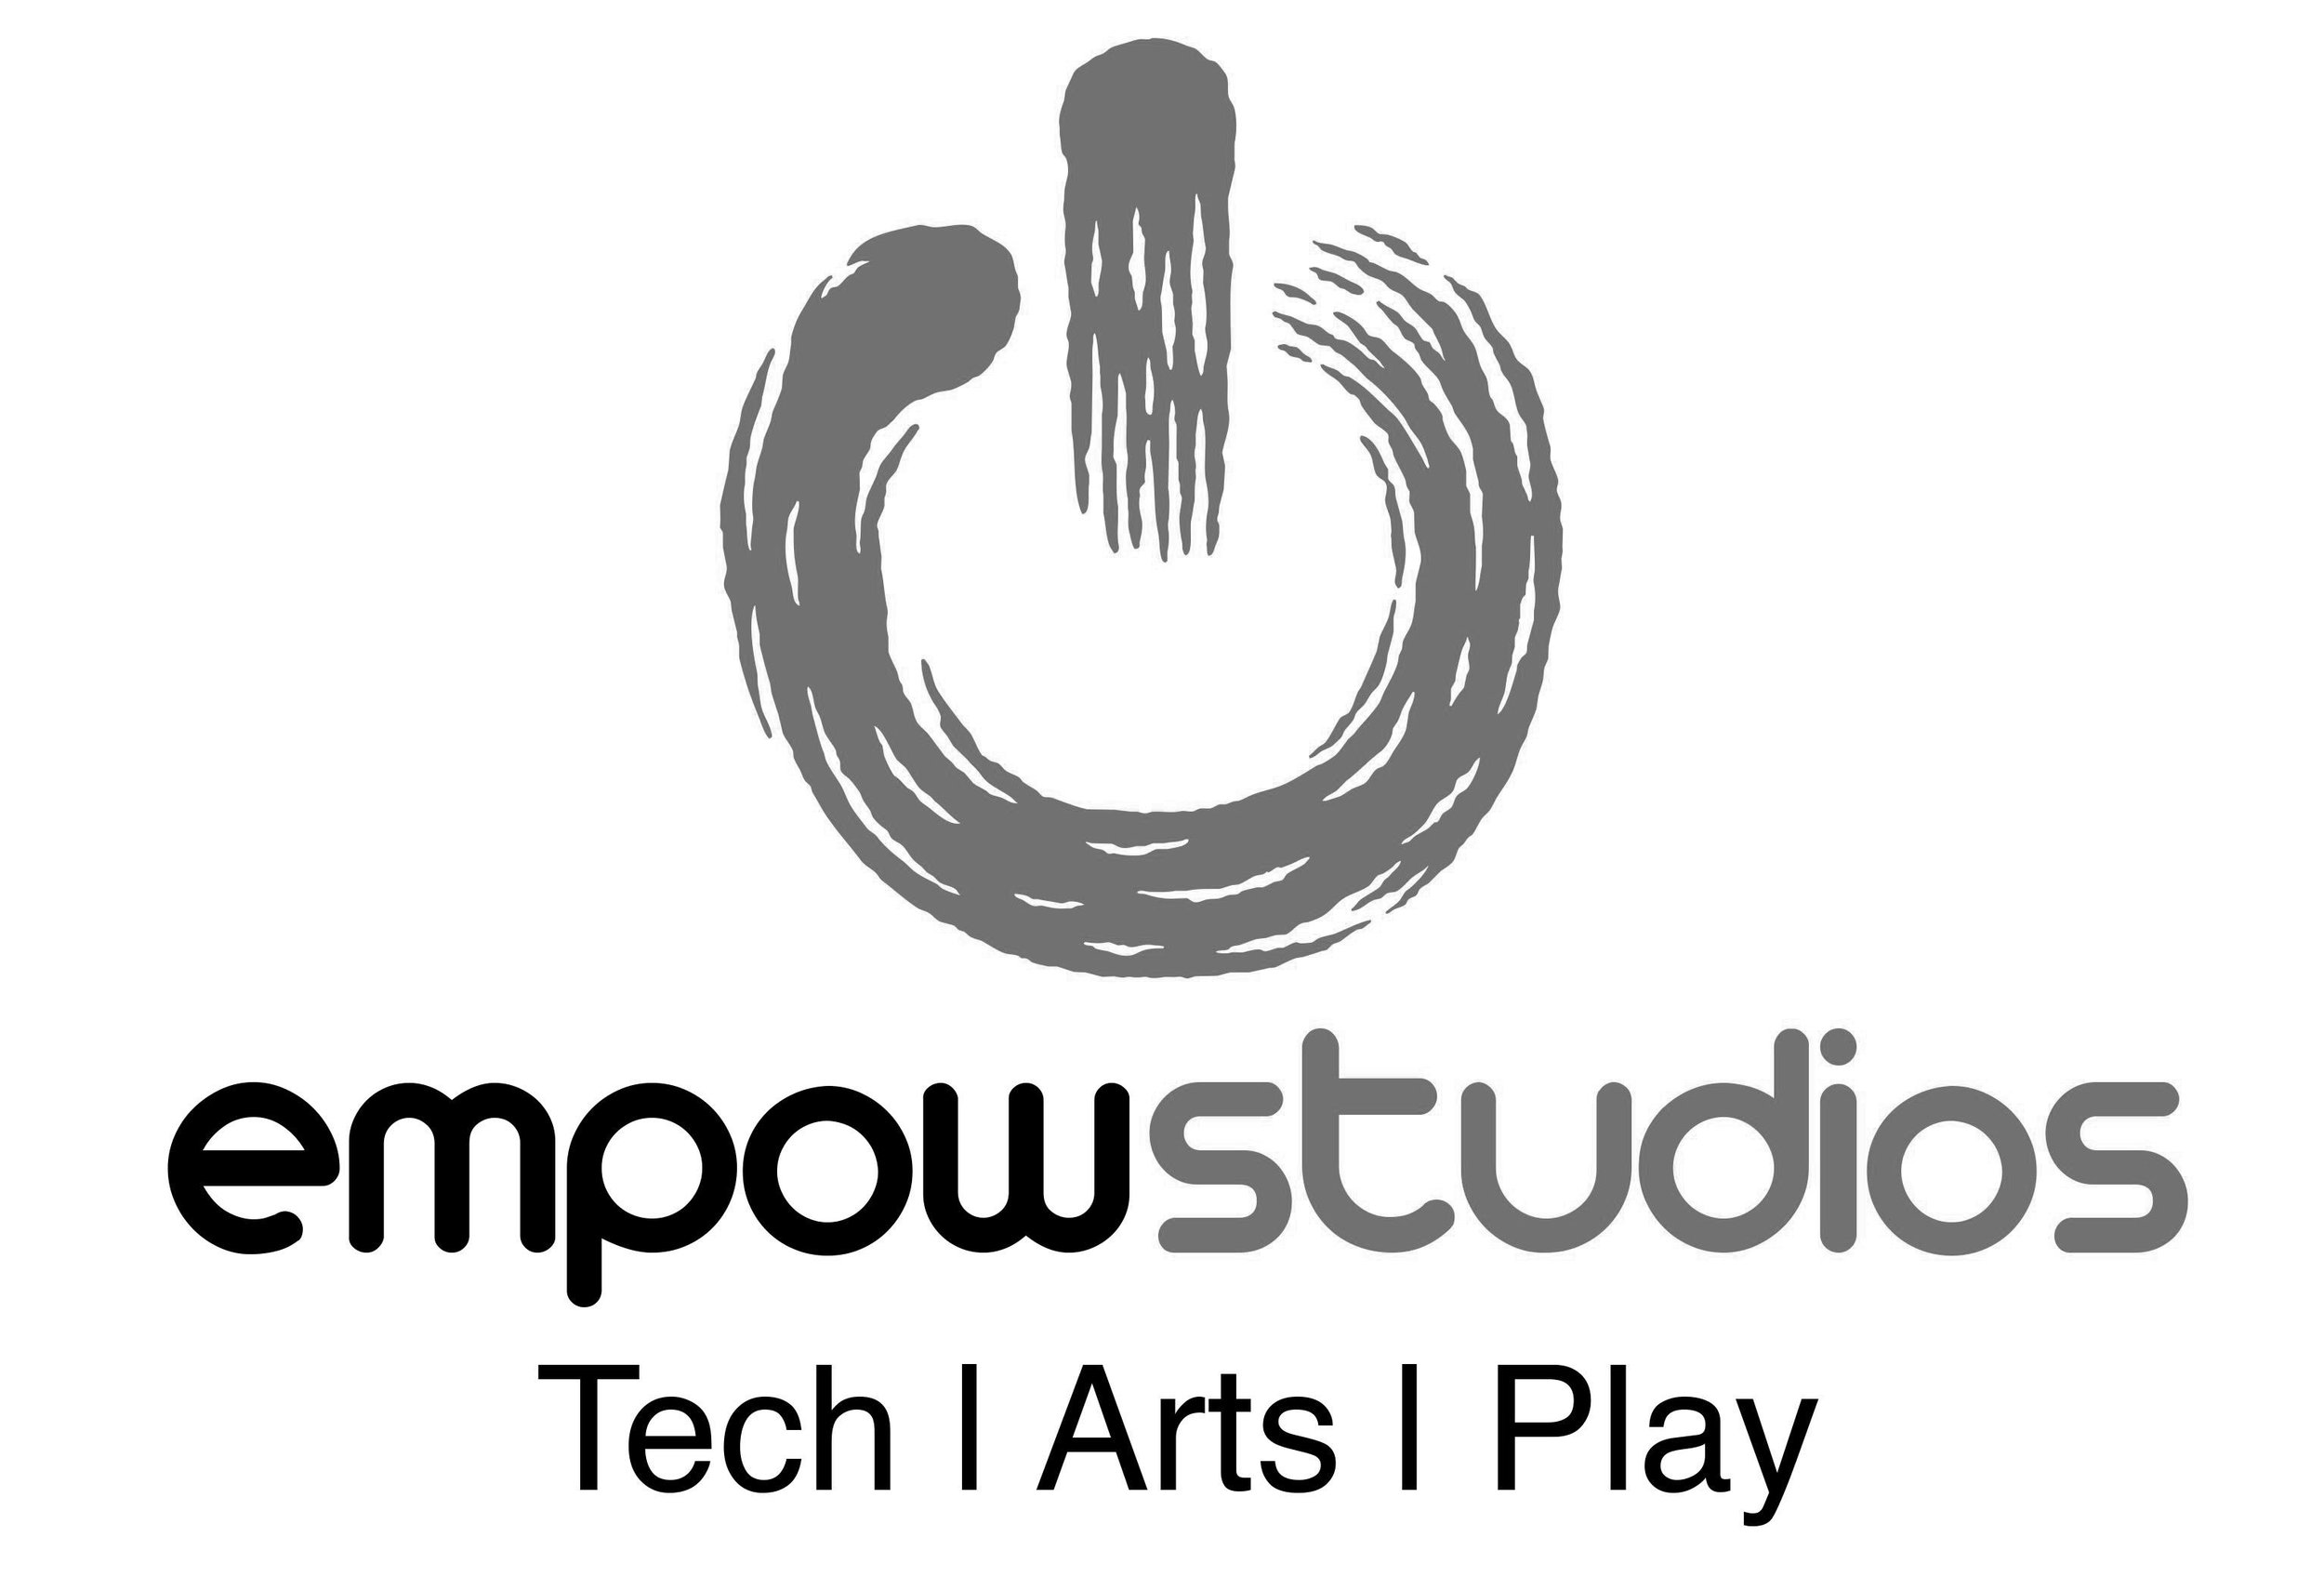 Copy of Empow Studioshttps://empow.me/